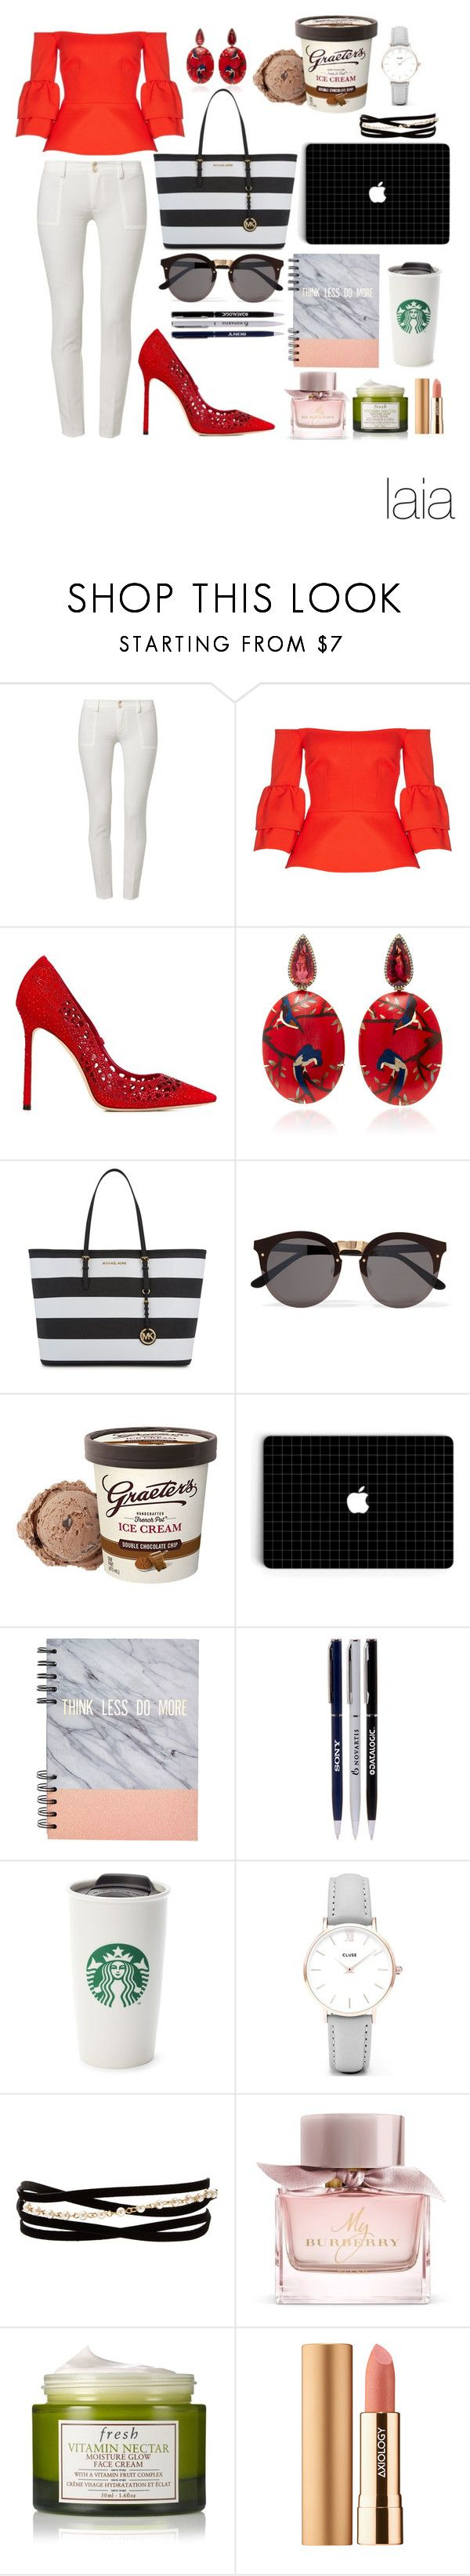 """Senza titolo #2181"" by mrsagati ❤ liked on Polyvore featuring LIST, Safiyaa, Jimmy Choo, Silvia Furmanovich, Michael Kors, Illesteva, CLUSE, Kenneth Jay Lane, Burberry and Fresh"